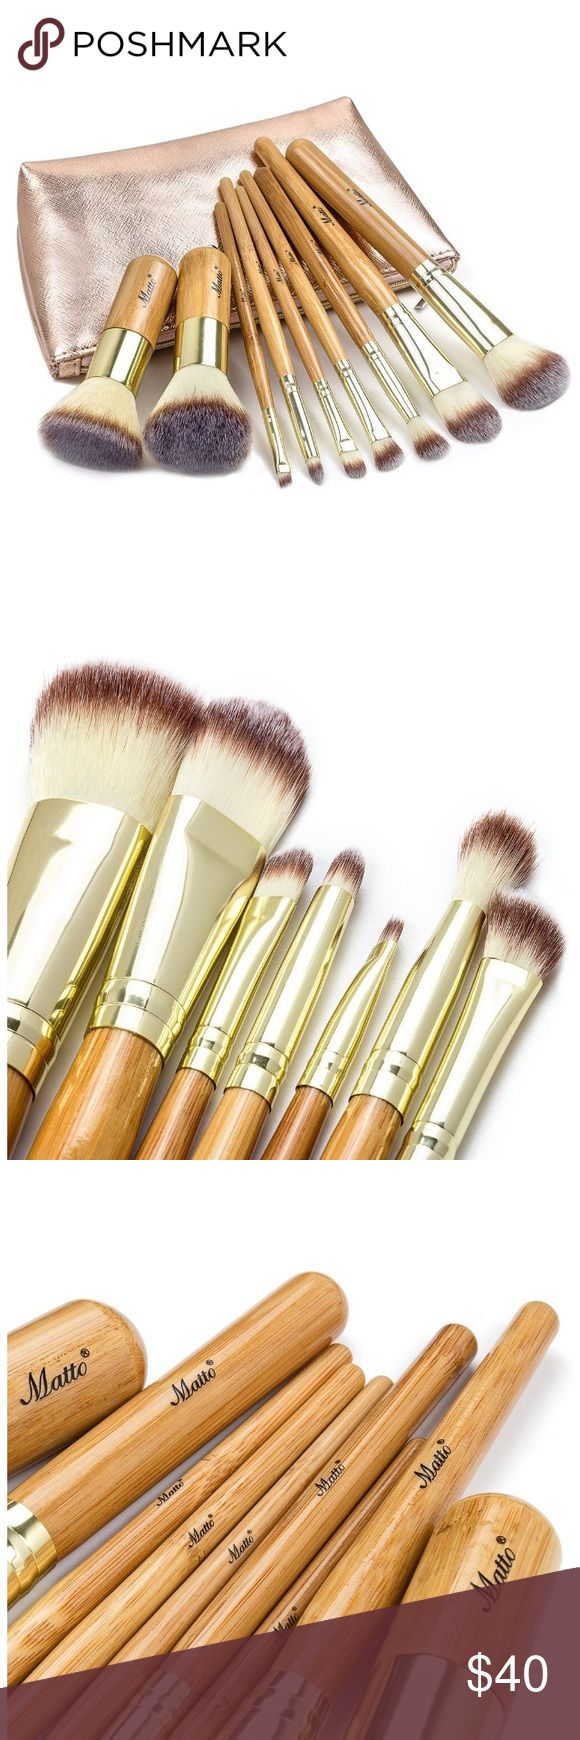 ⚡️FLASH SALE⚡️ Matto Bamboo Makeup Set •Ultra soft, dense and smooth synthetic bristles: 100% cruelty-free. Non-porous synthetic bristles do not trap or absorb products and bacteria. Easy to clean and maintain. •Natural bamboo handles. •9pc brushes - Each brush bristles are hand-cut to the perfect shape, allowing for precise application from dense coverage to a soft, delicate finish. FREE BONUS: shiny and cute brush bag! 🚫 No Trades 🚫 No Lowball Offers Please ✔️ Reasonable Offers on…